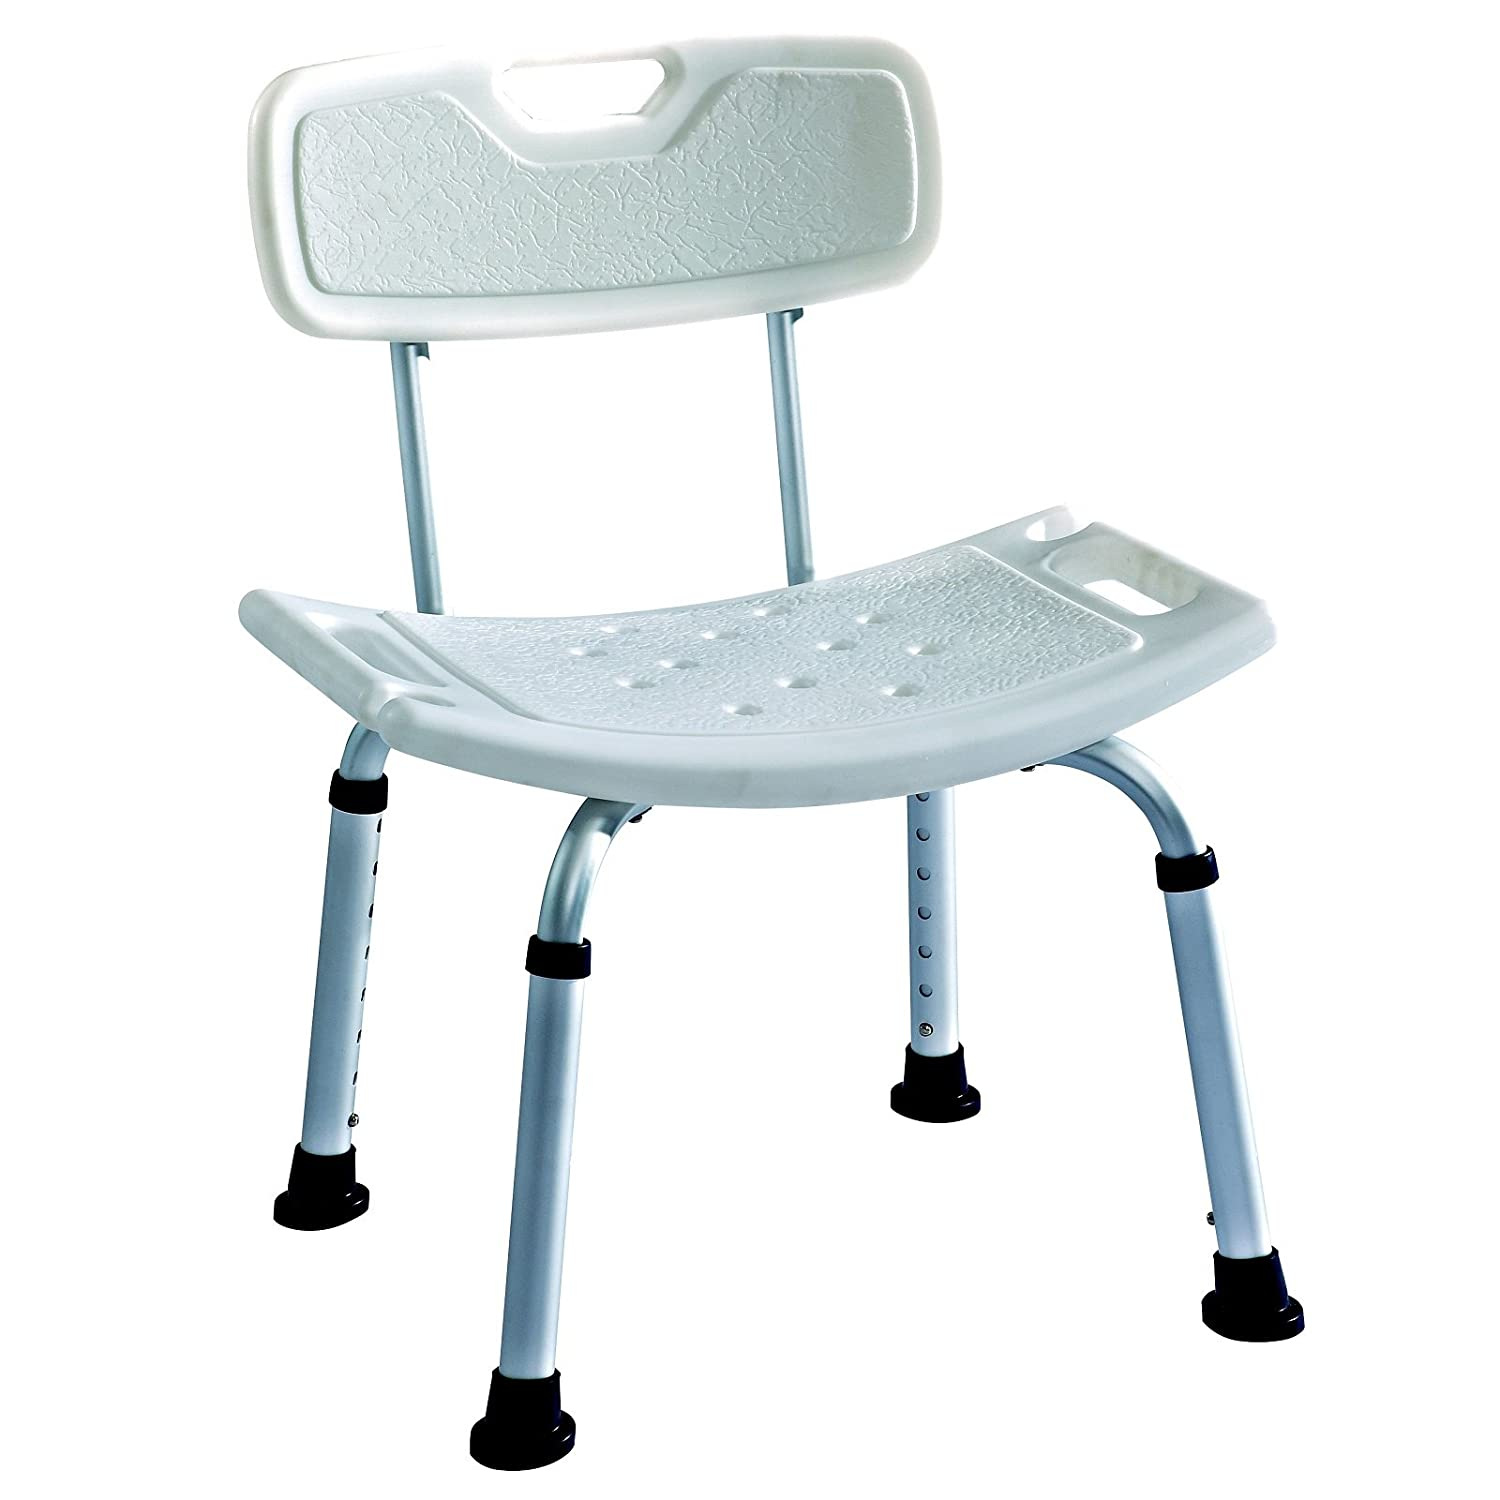 Top 10 Best Shower Chairs for the Elderly 2016-2017 on Flipboard